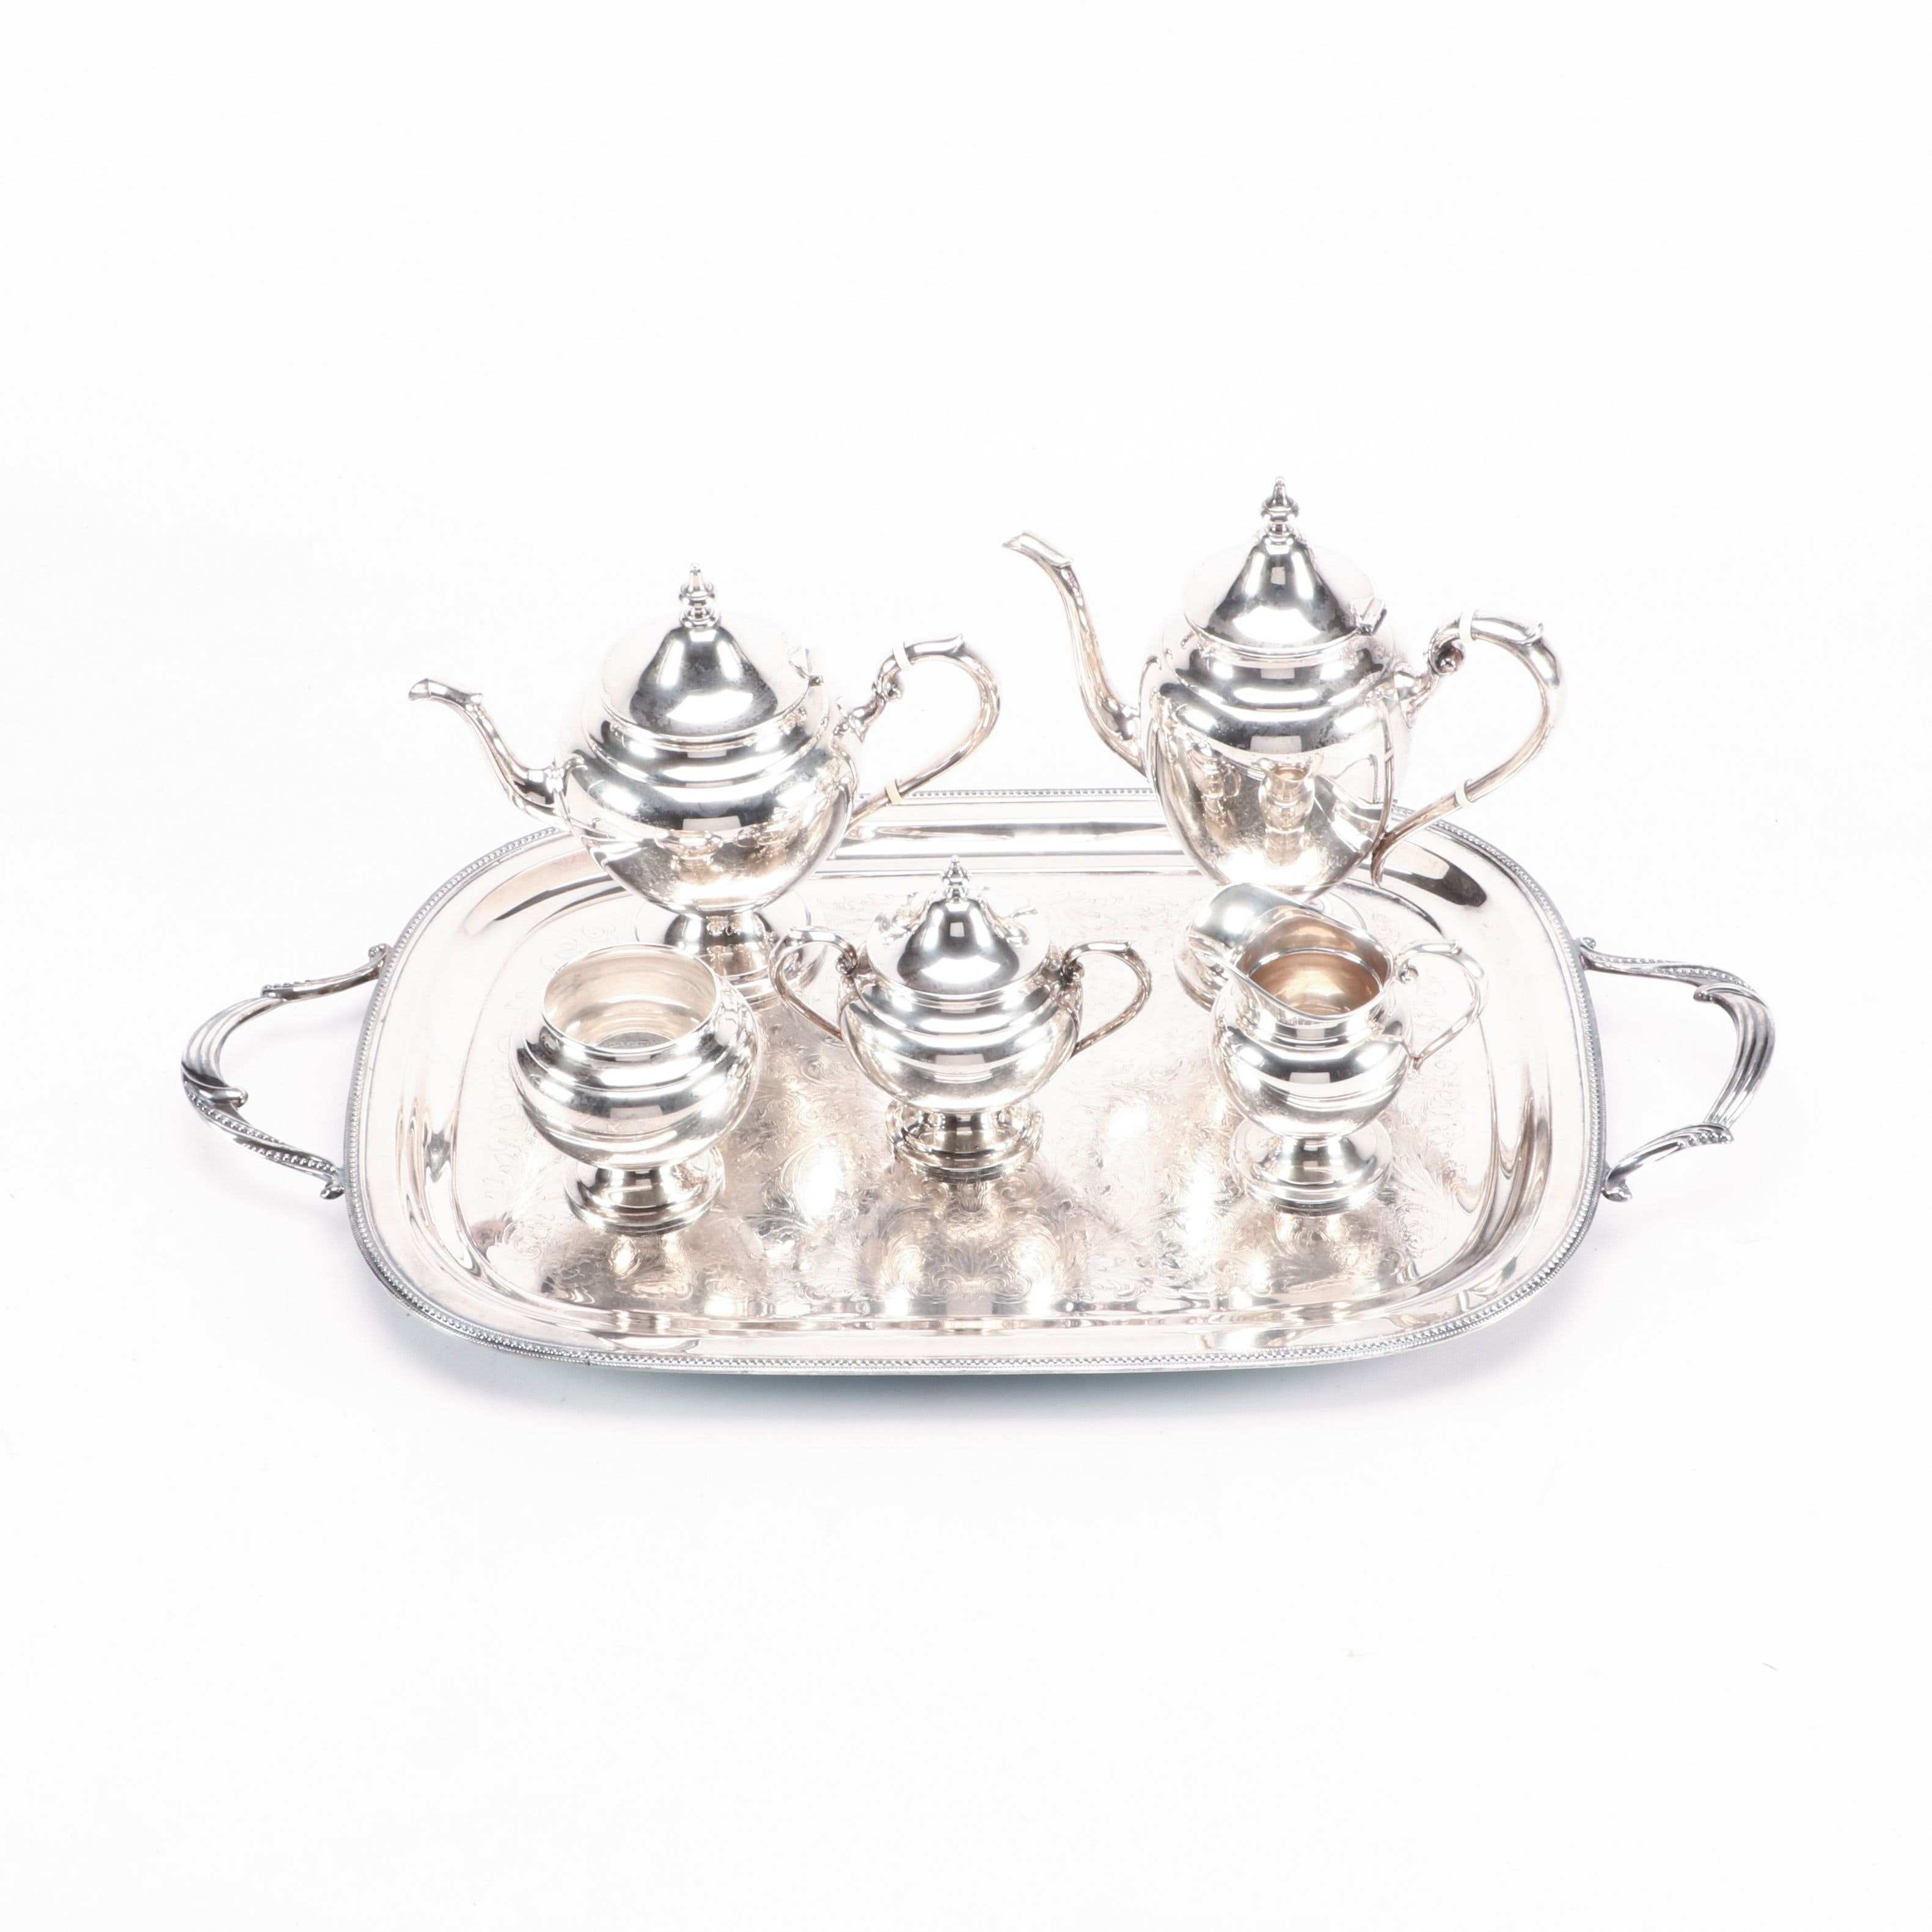 "Gorham ""Puritan"" Sterling Silver Serveware Set and Silver Plate Tray"